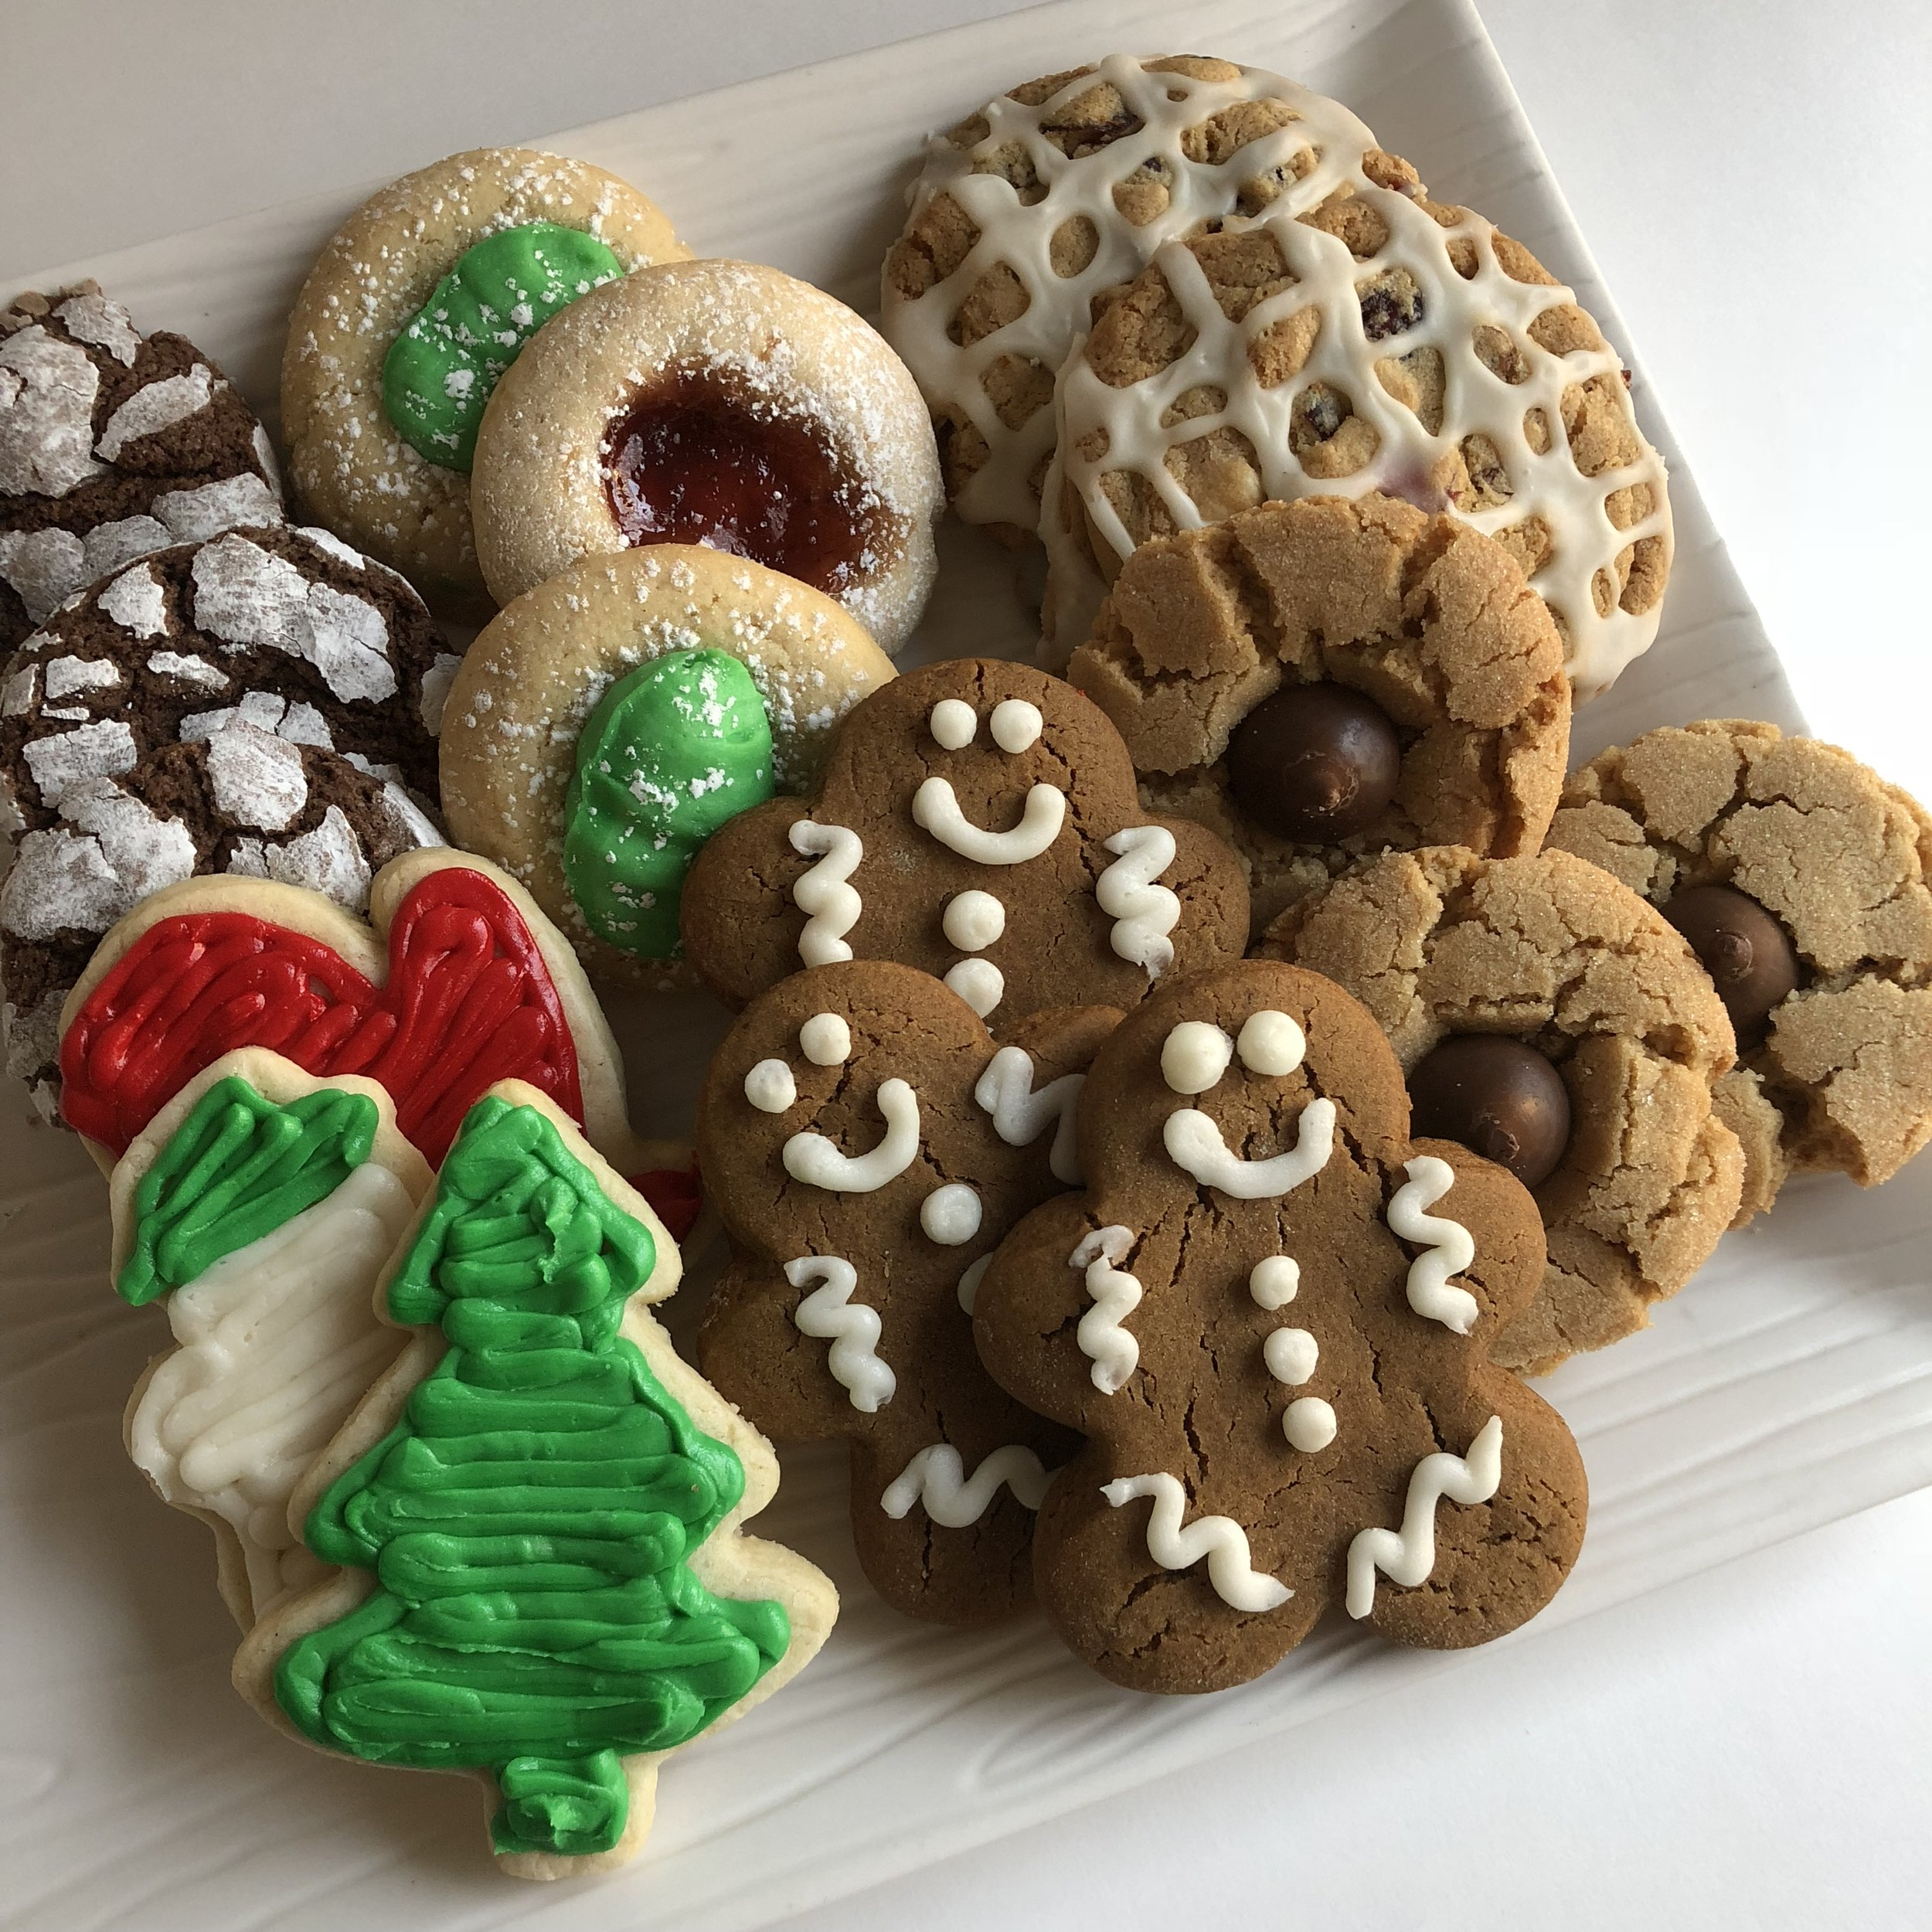 Cookies are a holiday must have! Our holiday cookie tray contains a variety of delicious homemade cookies to make everyone happy. Wrapped in a bow, it makes the perfect gift to bring to any holiday party!